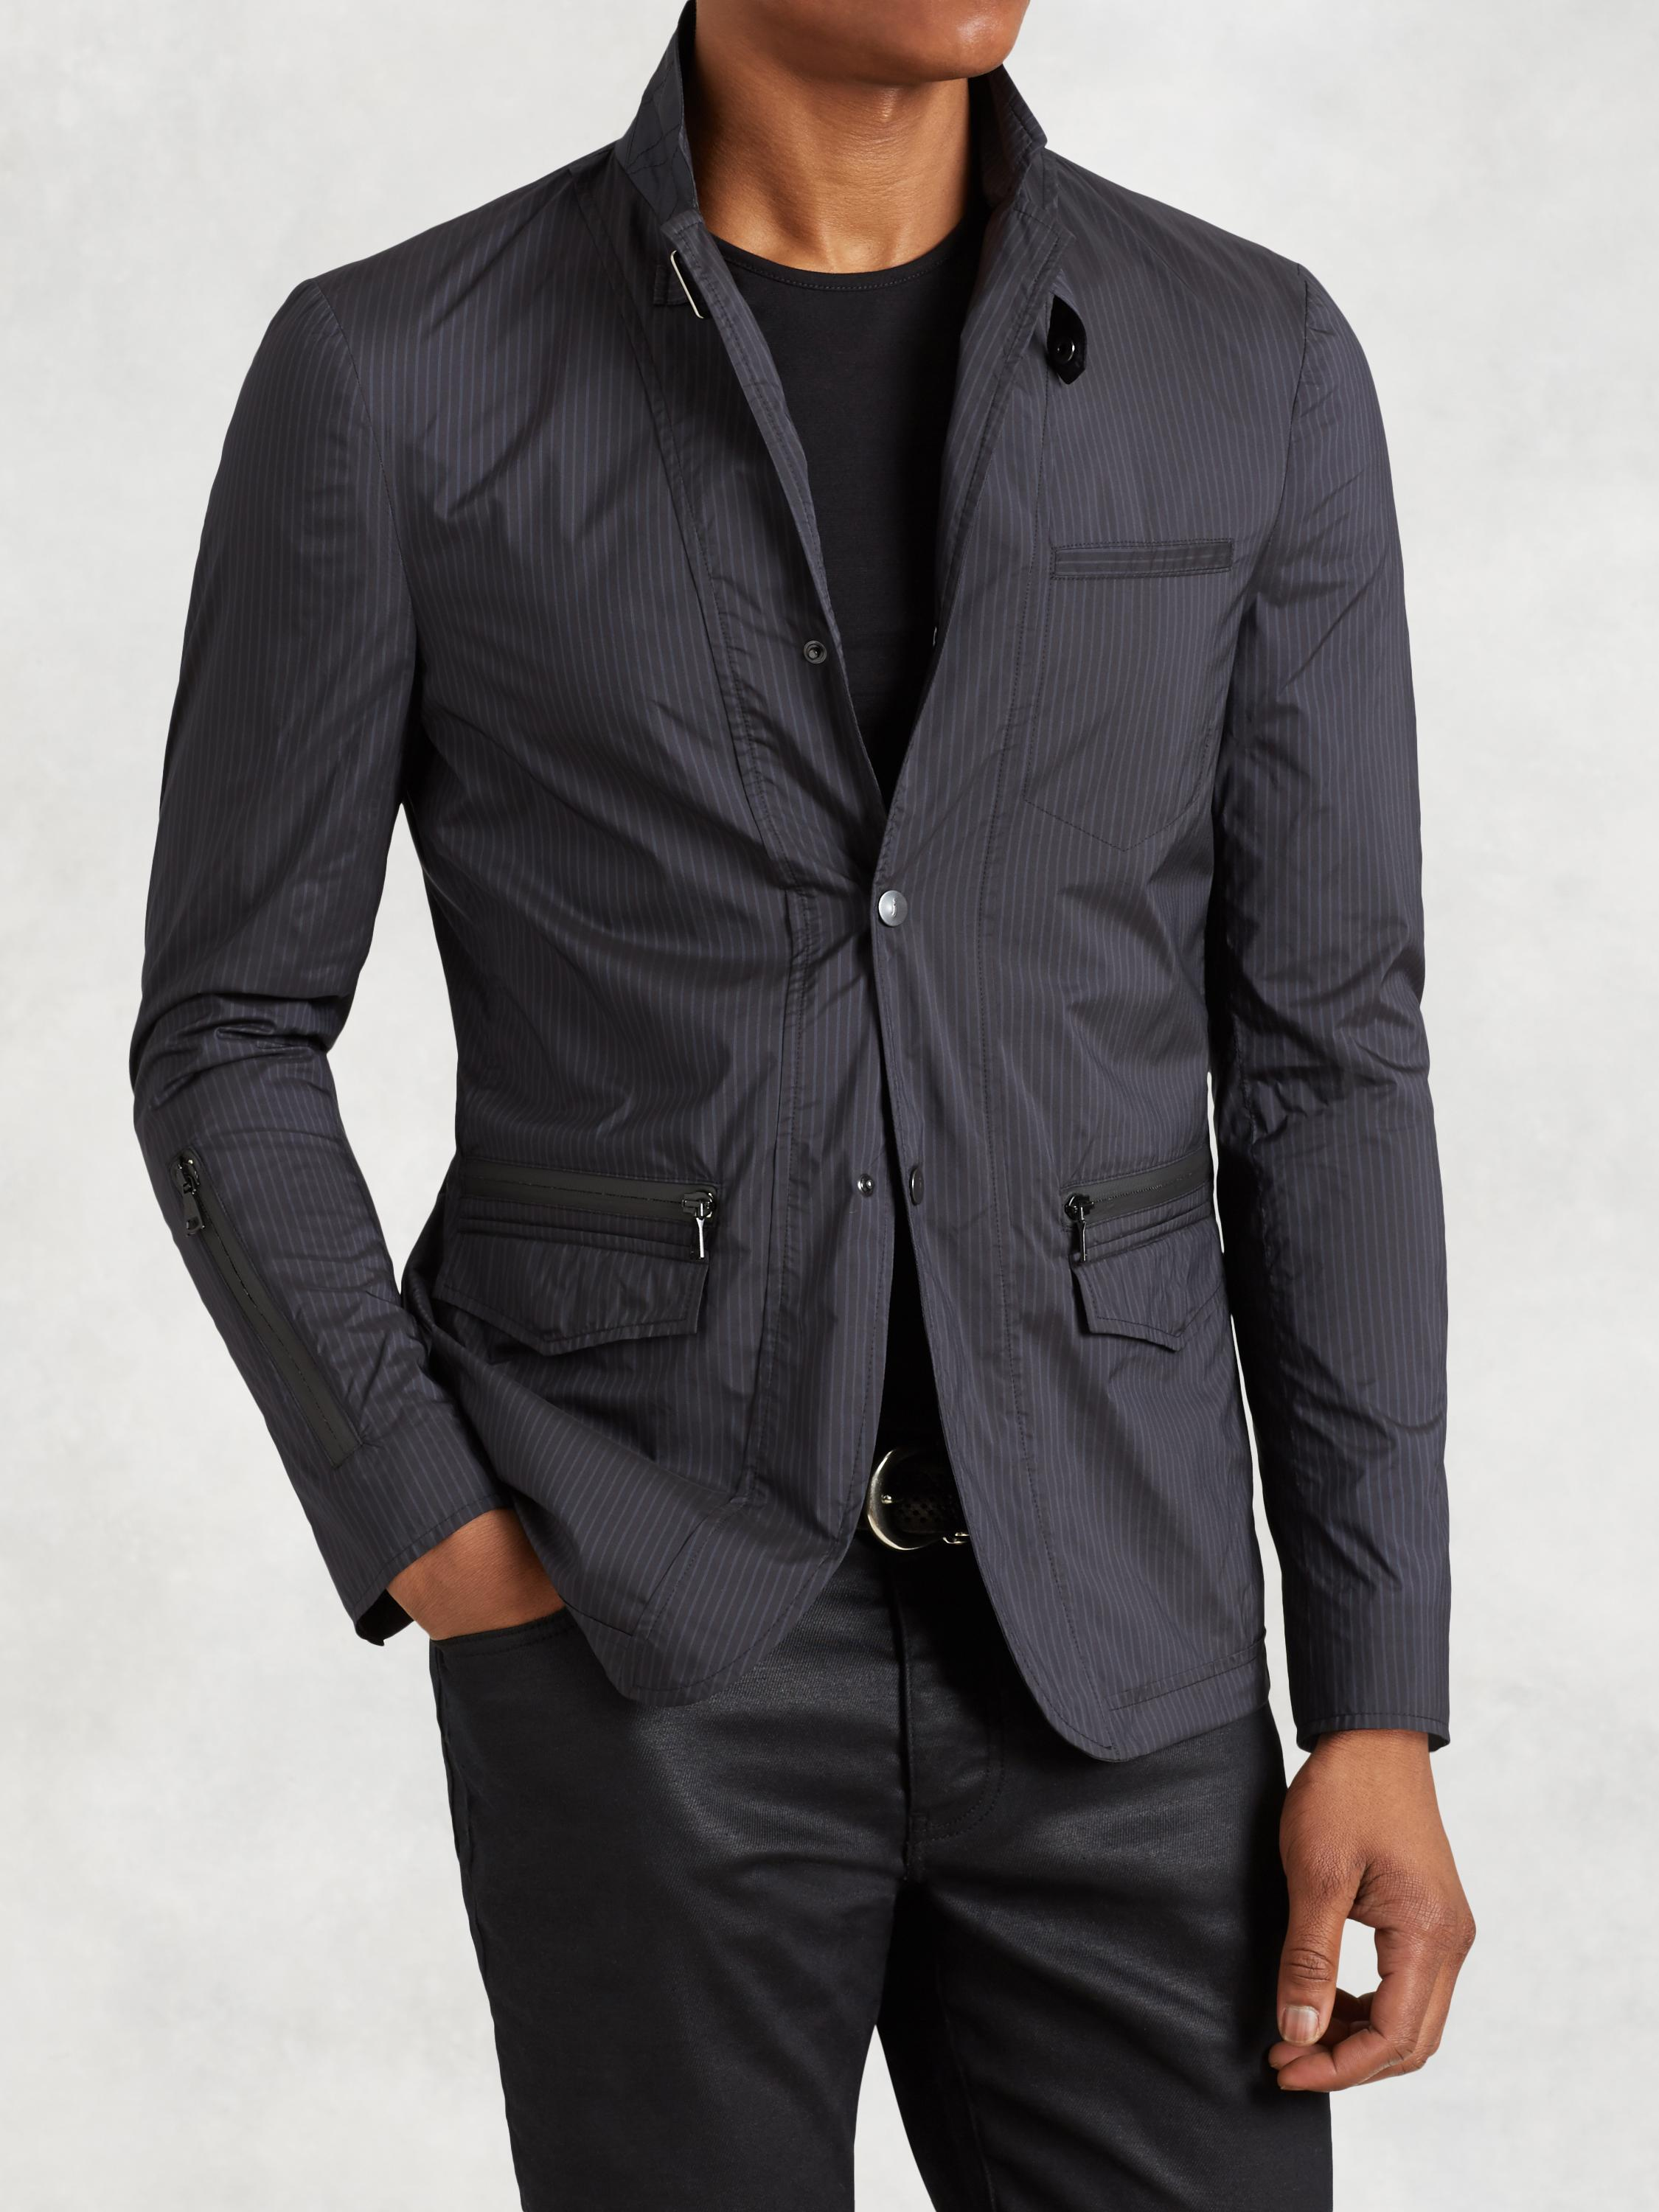 Convertible Lapel Nylon Jacket